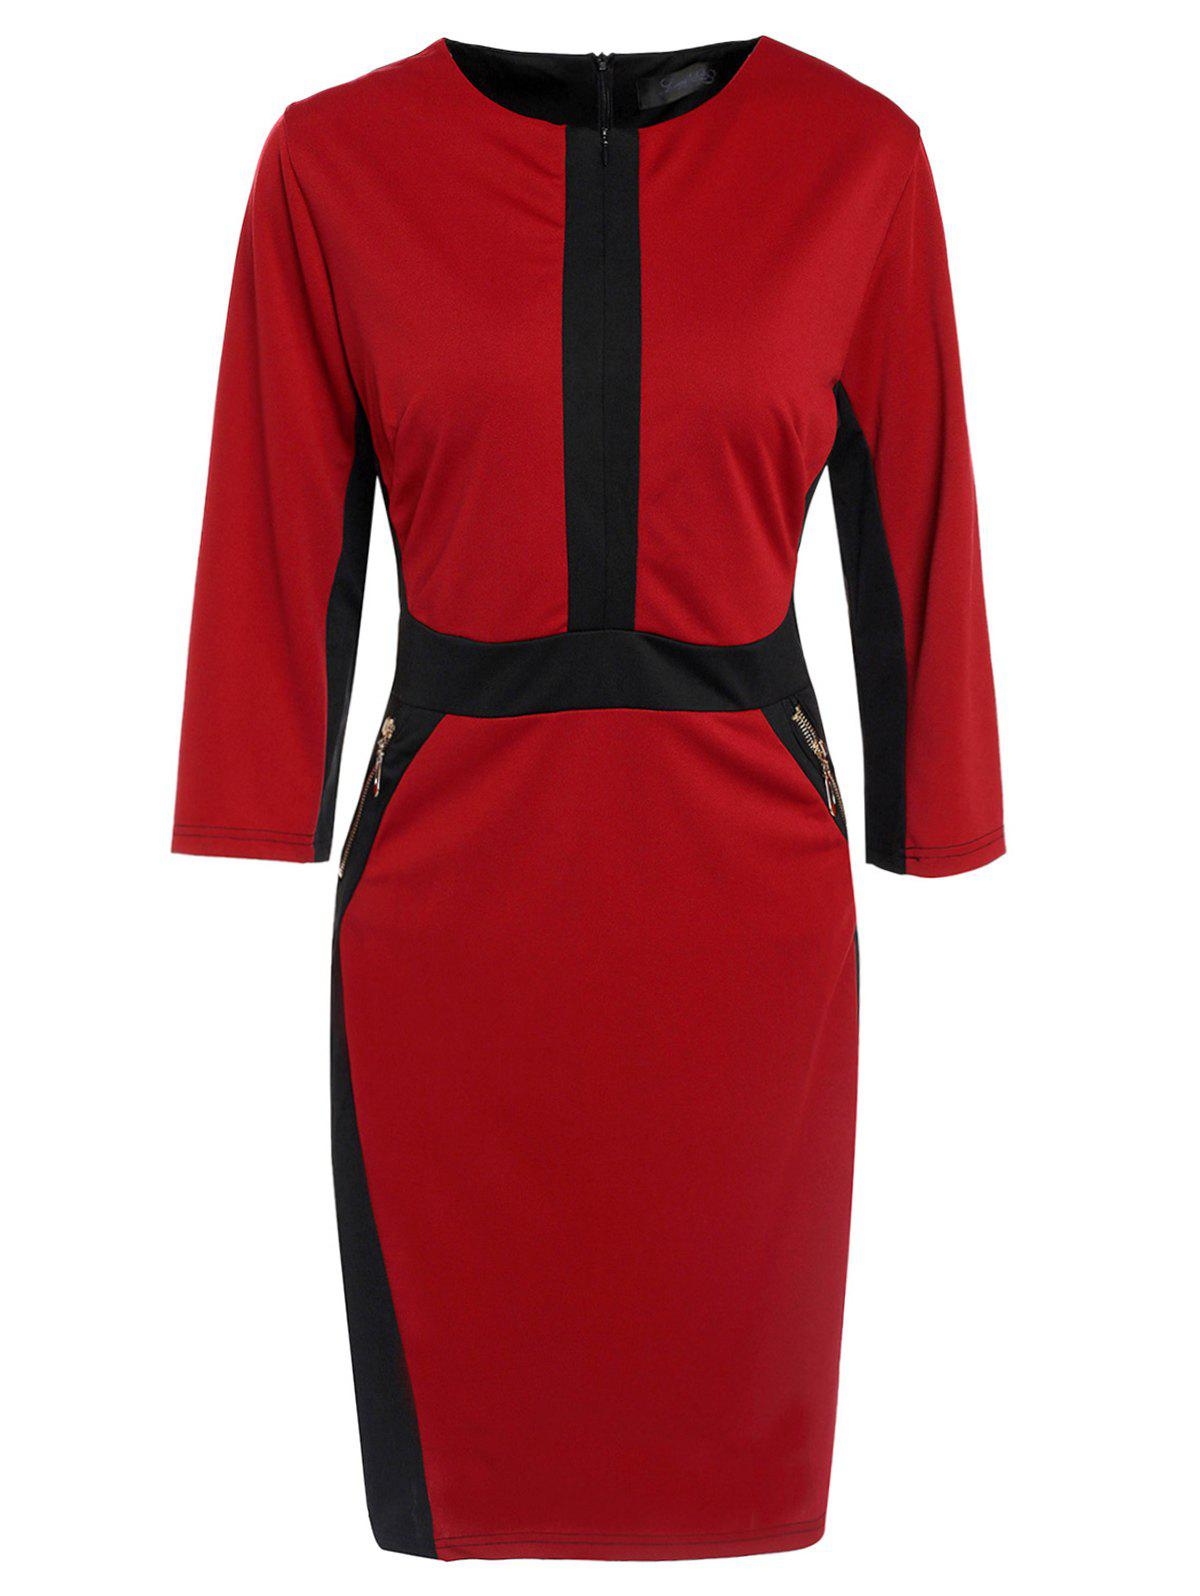 OL Style 3/4 Sleeve Round Neck Zip Design Hit Color Women's Bodycon Dress - WINE RED XL